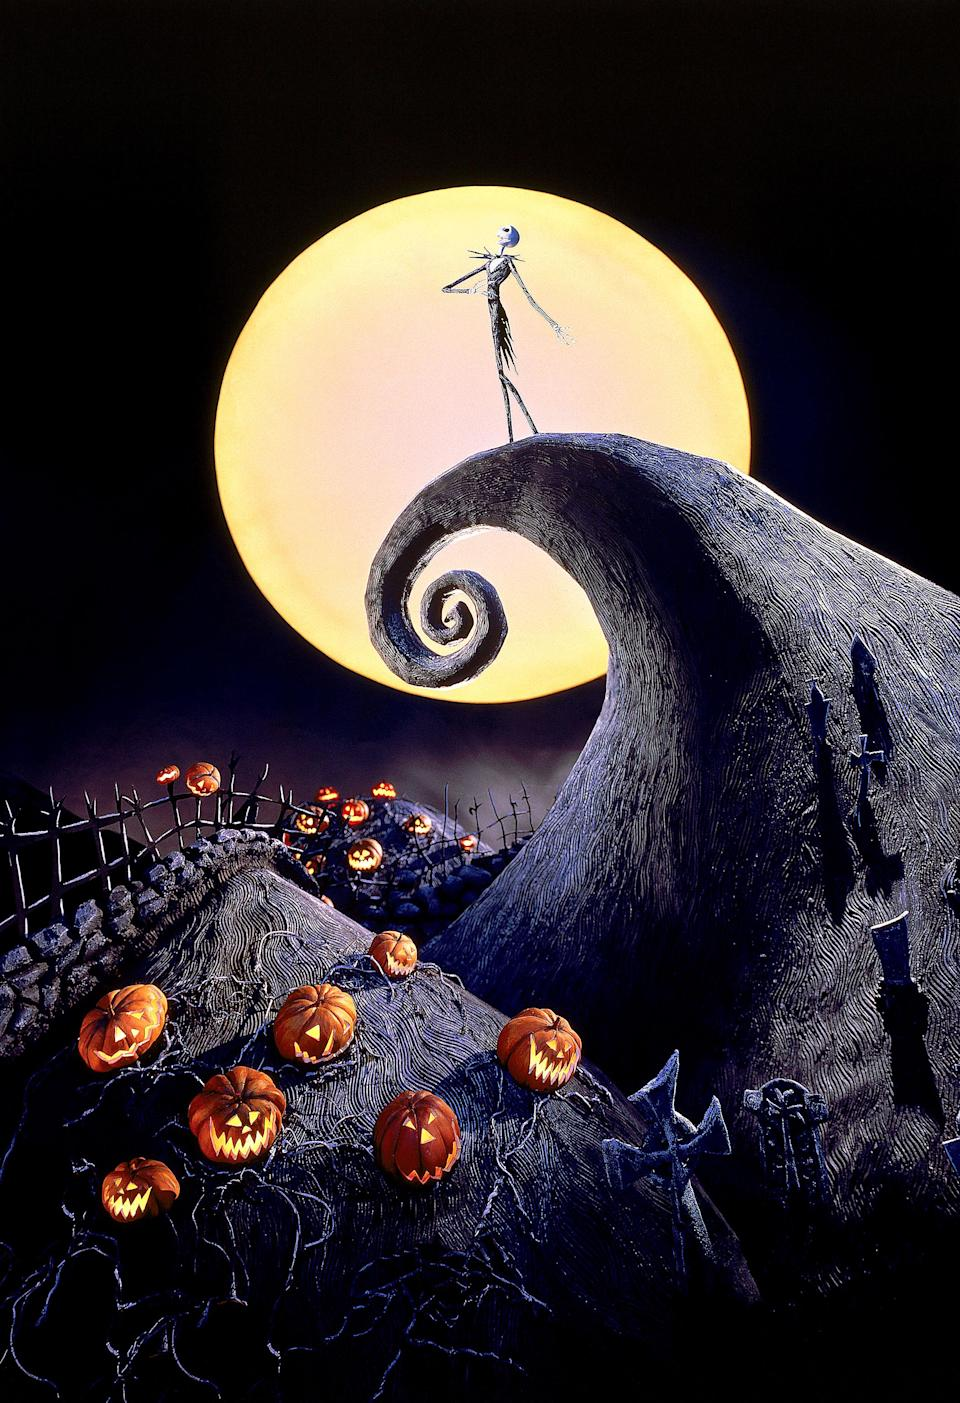 Jack Skellington in an iconic image from <em>The Nightmare Before Christmas</em>, directed by Henry Selick. (Image: Disney/Buena Vista Pictures/Everett Collection)